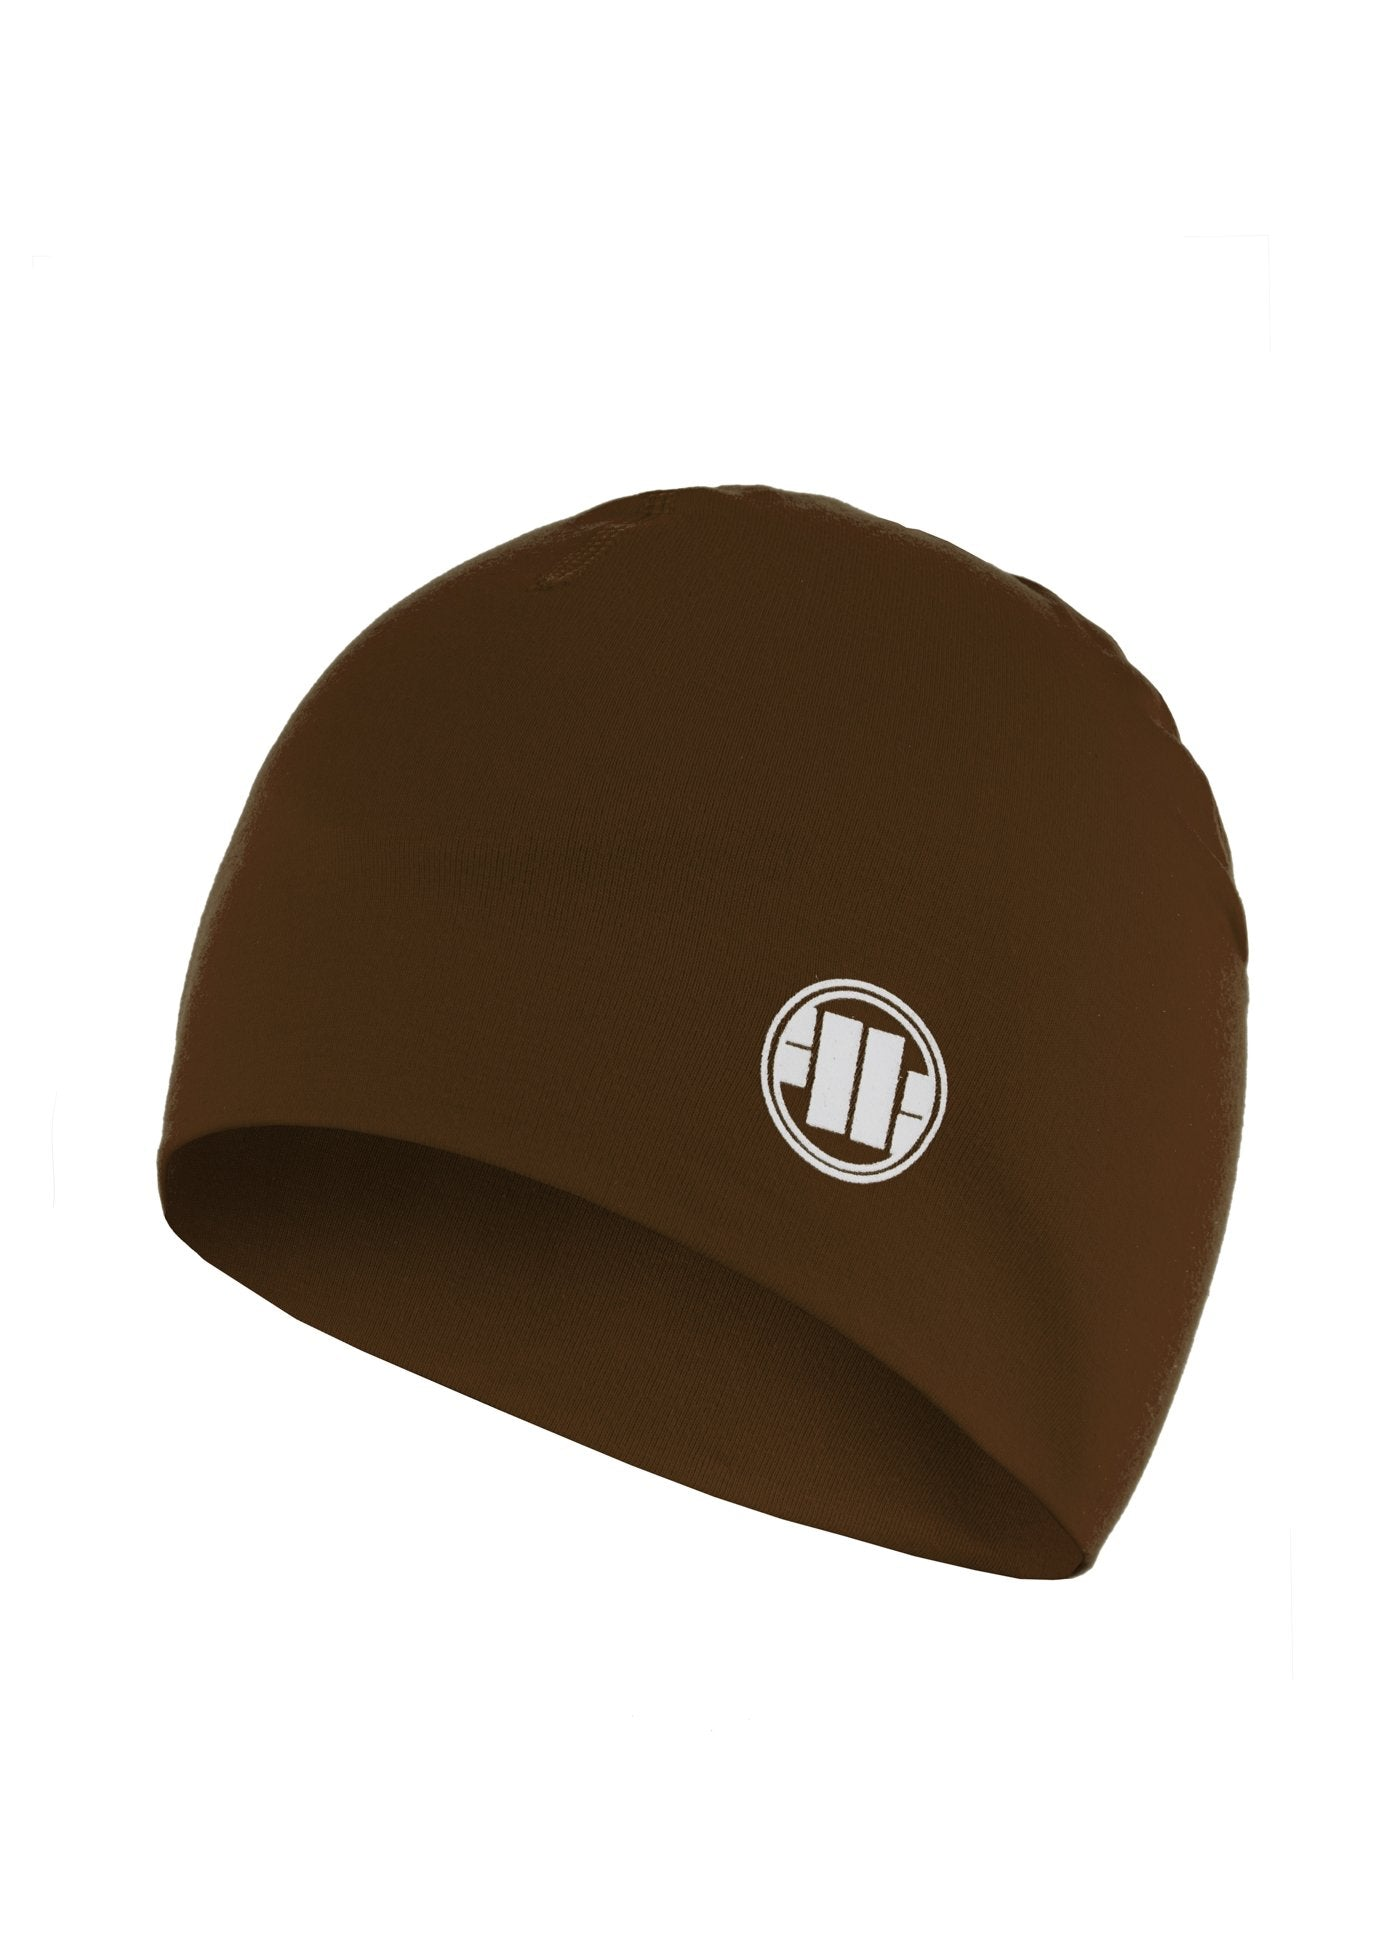 Compression Beanie SMALL LOGO Brown - Pitbull West Coast  UK Store